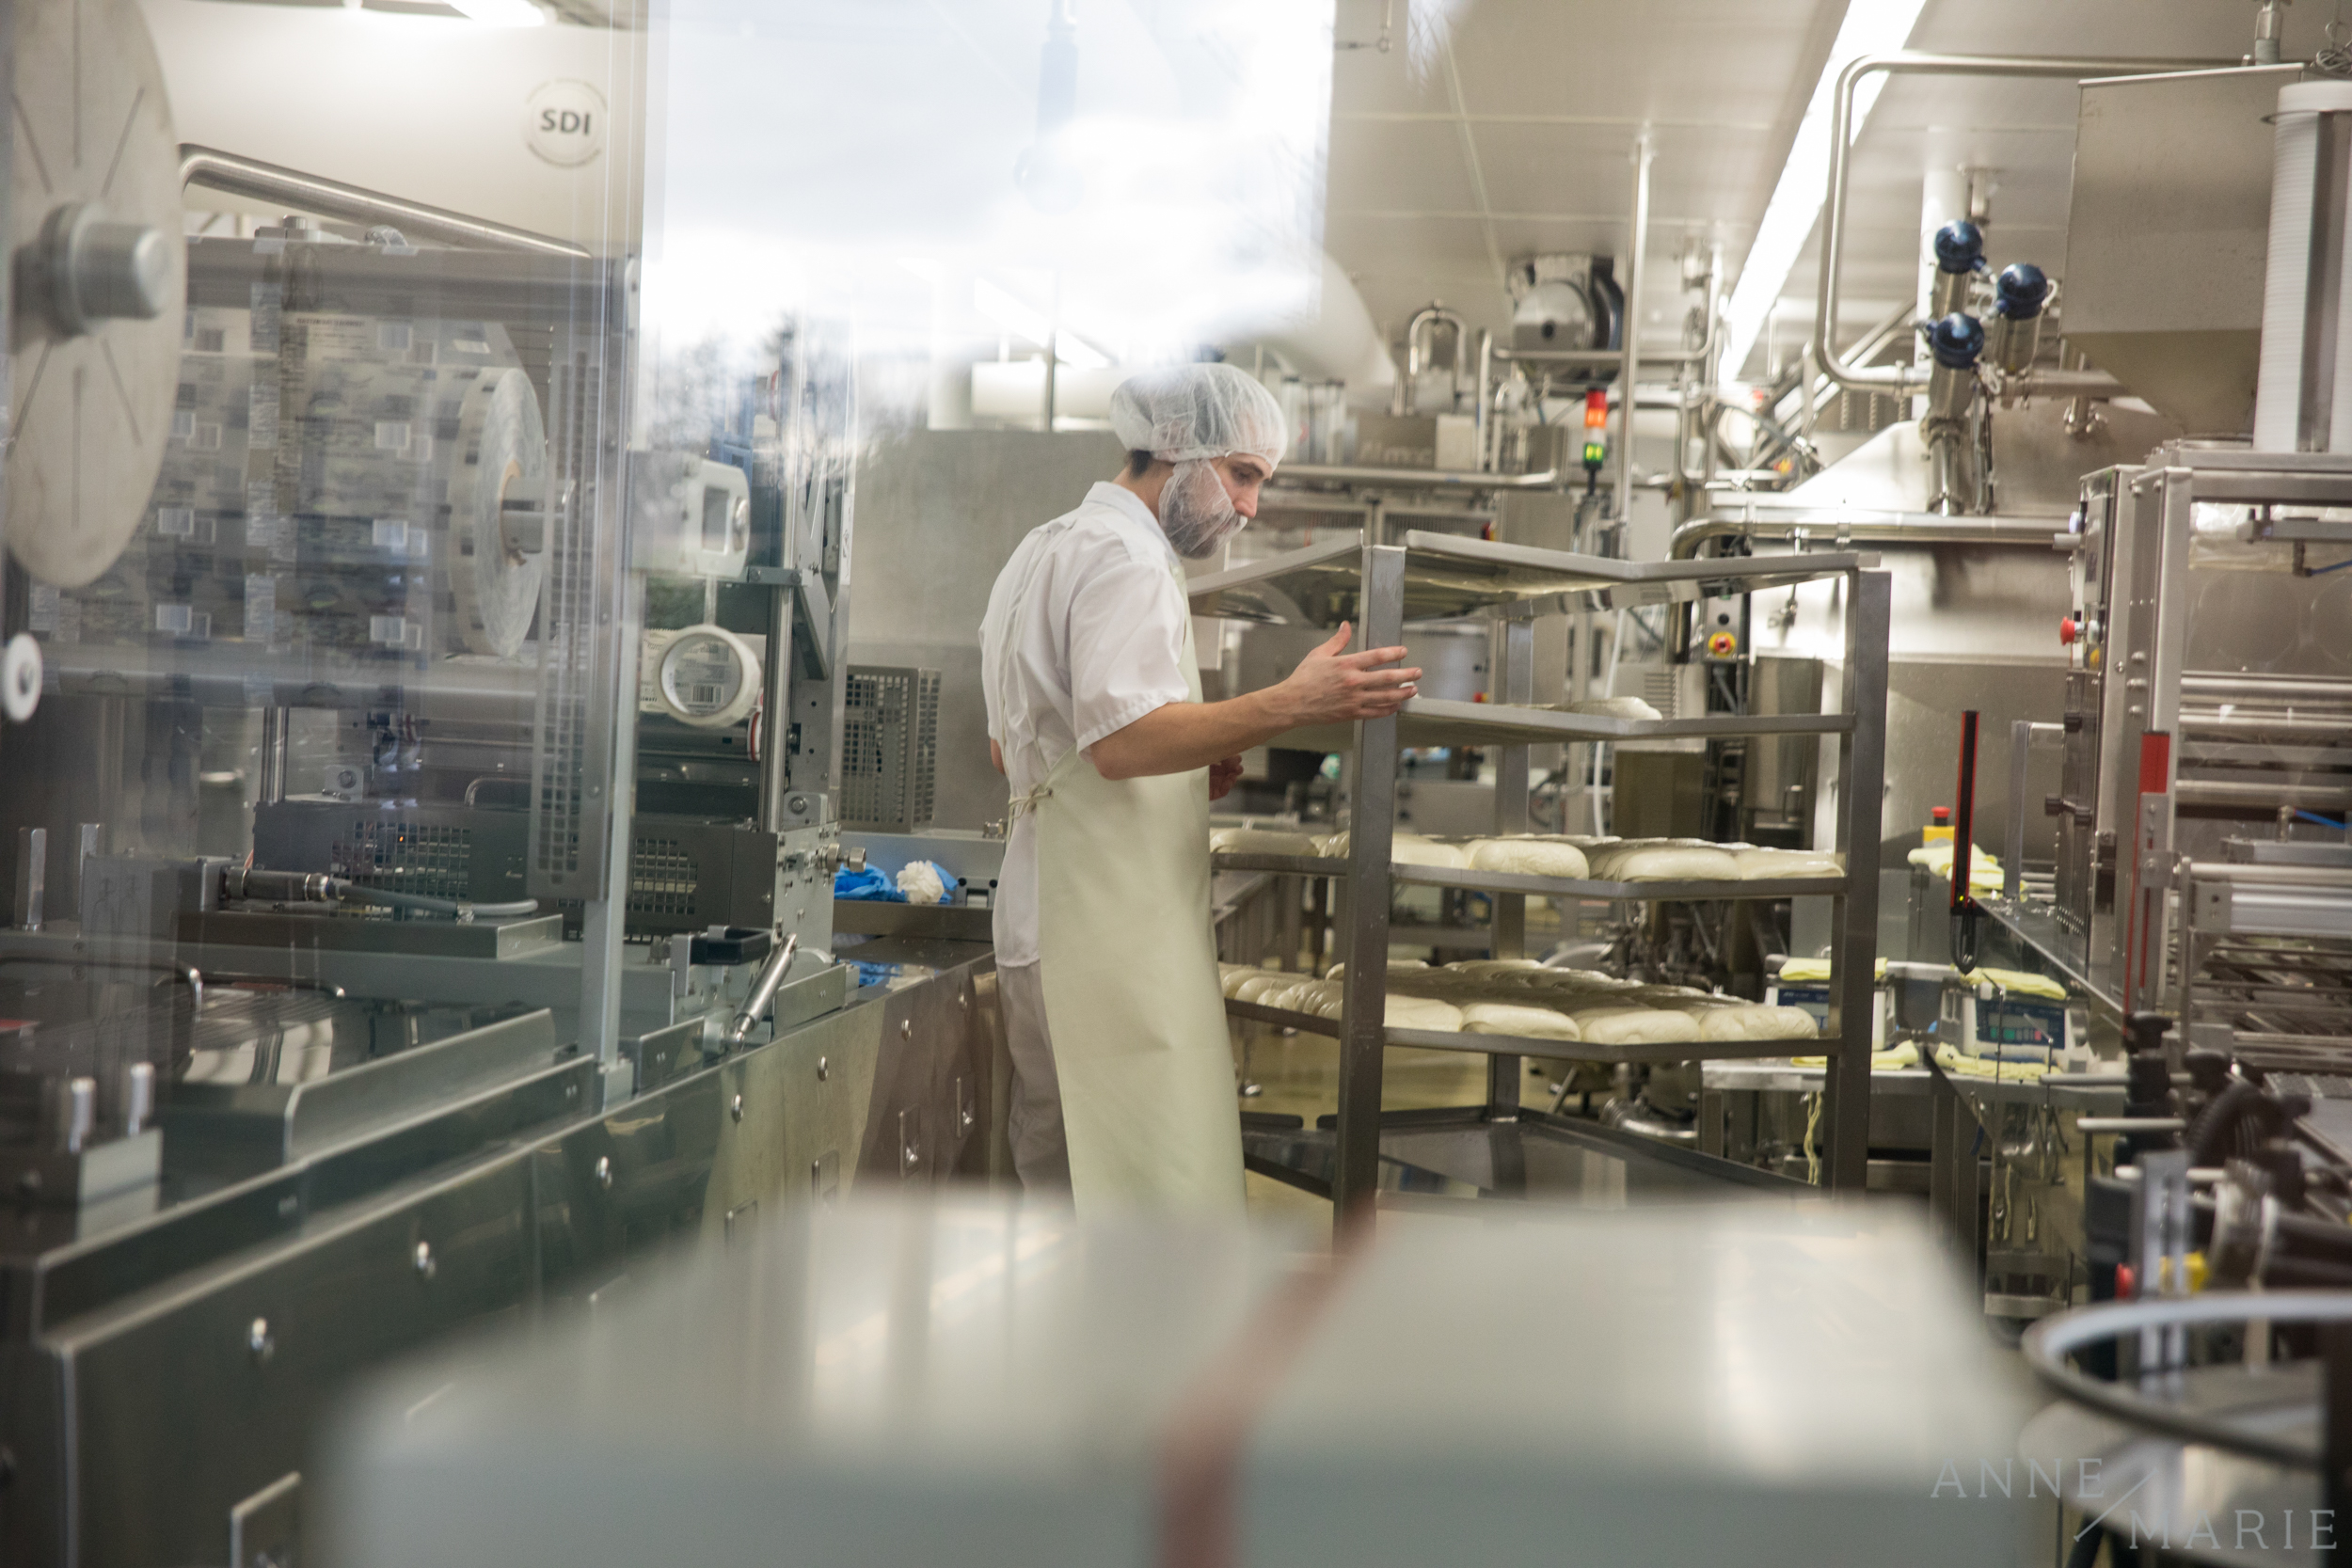 One of the employees moves some of the fresh cheese.